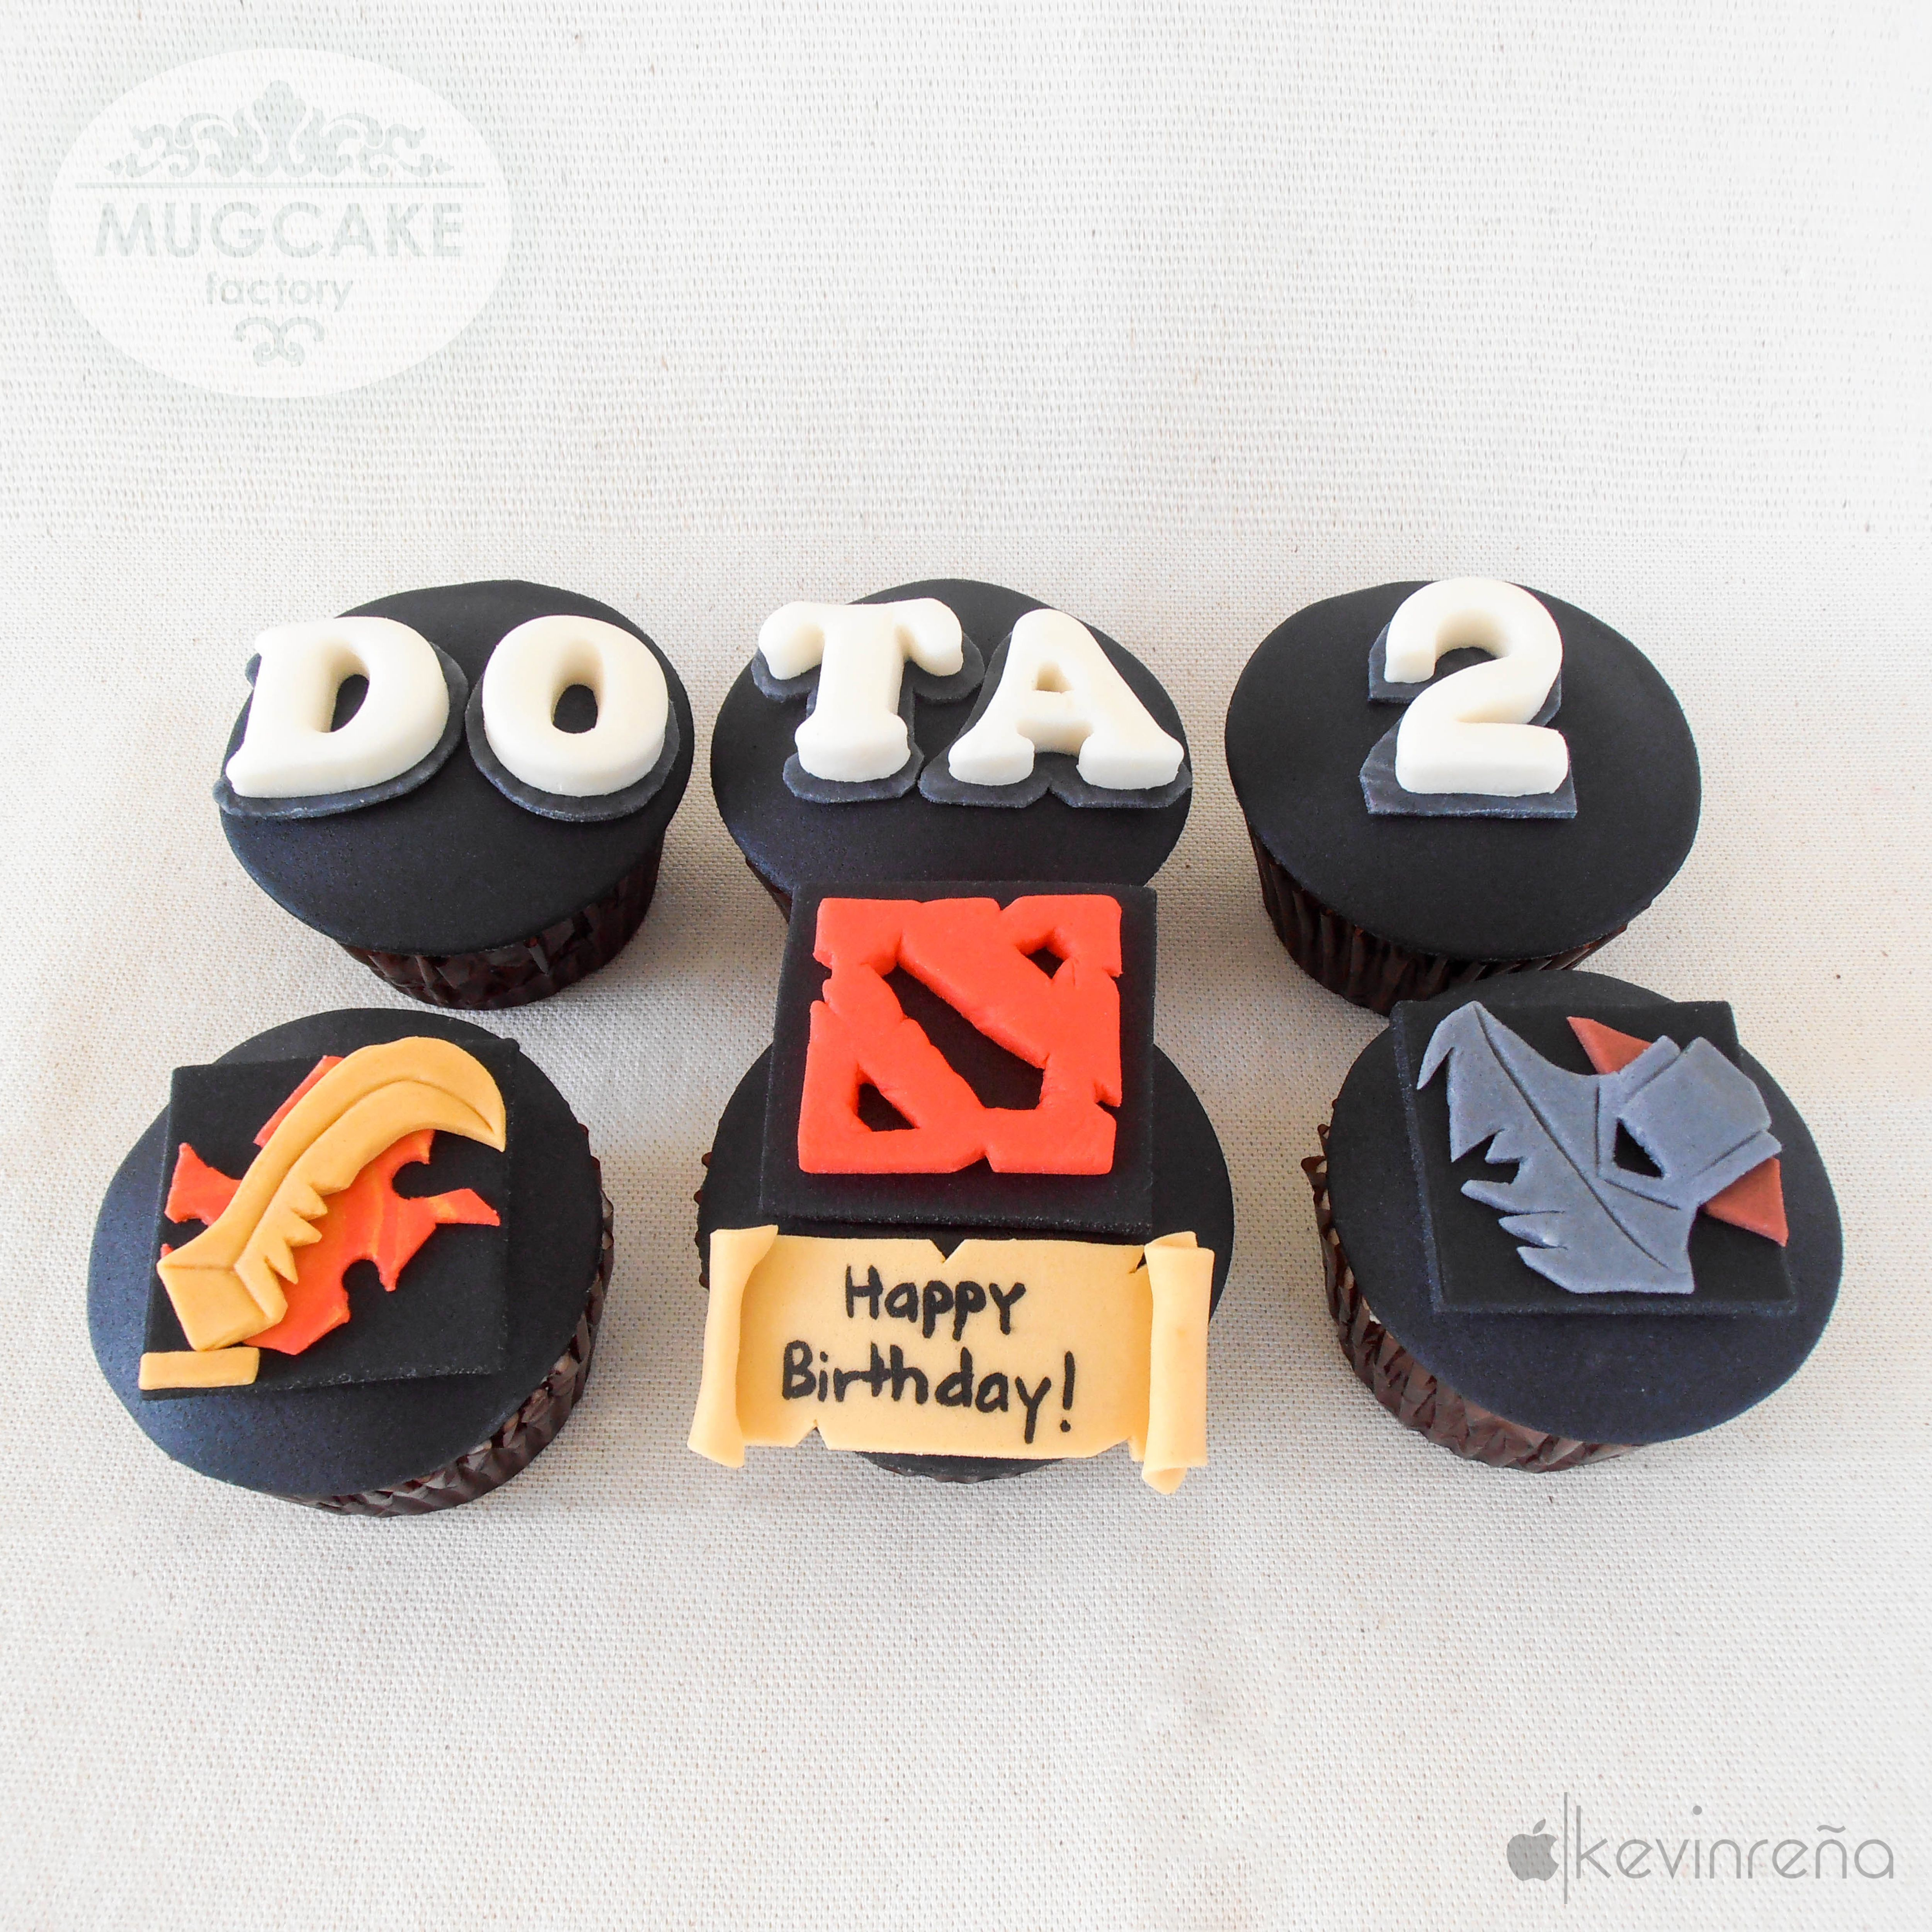 how to make dota 2 items